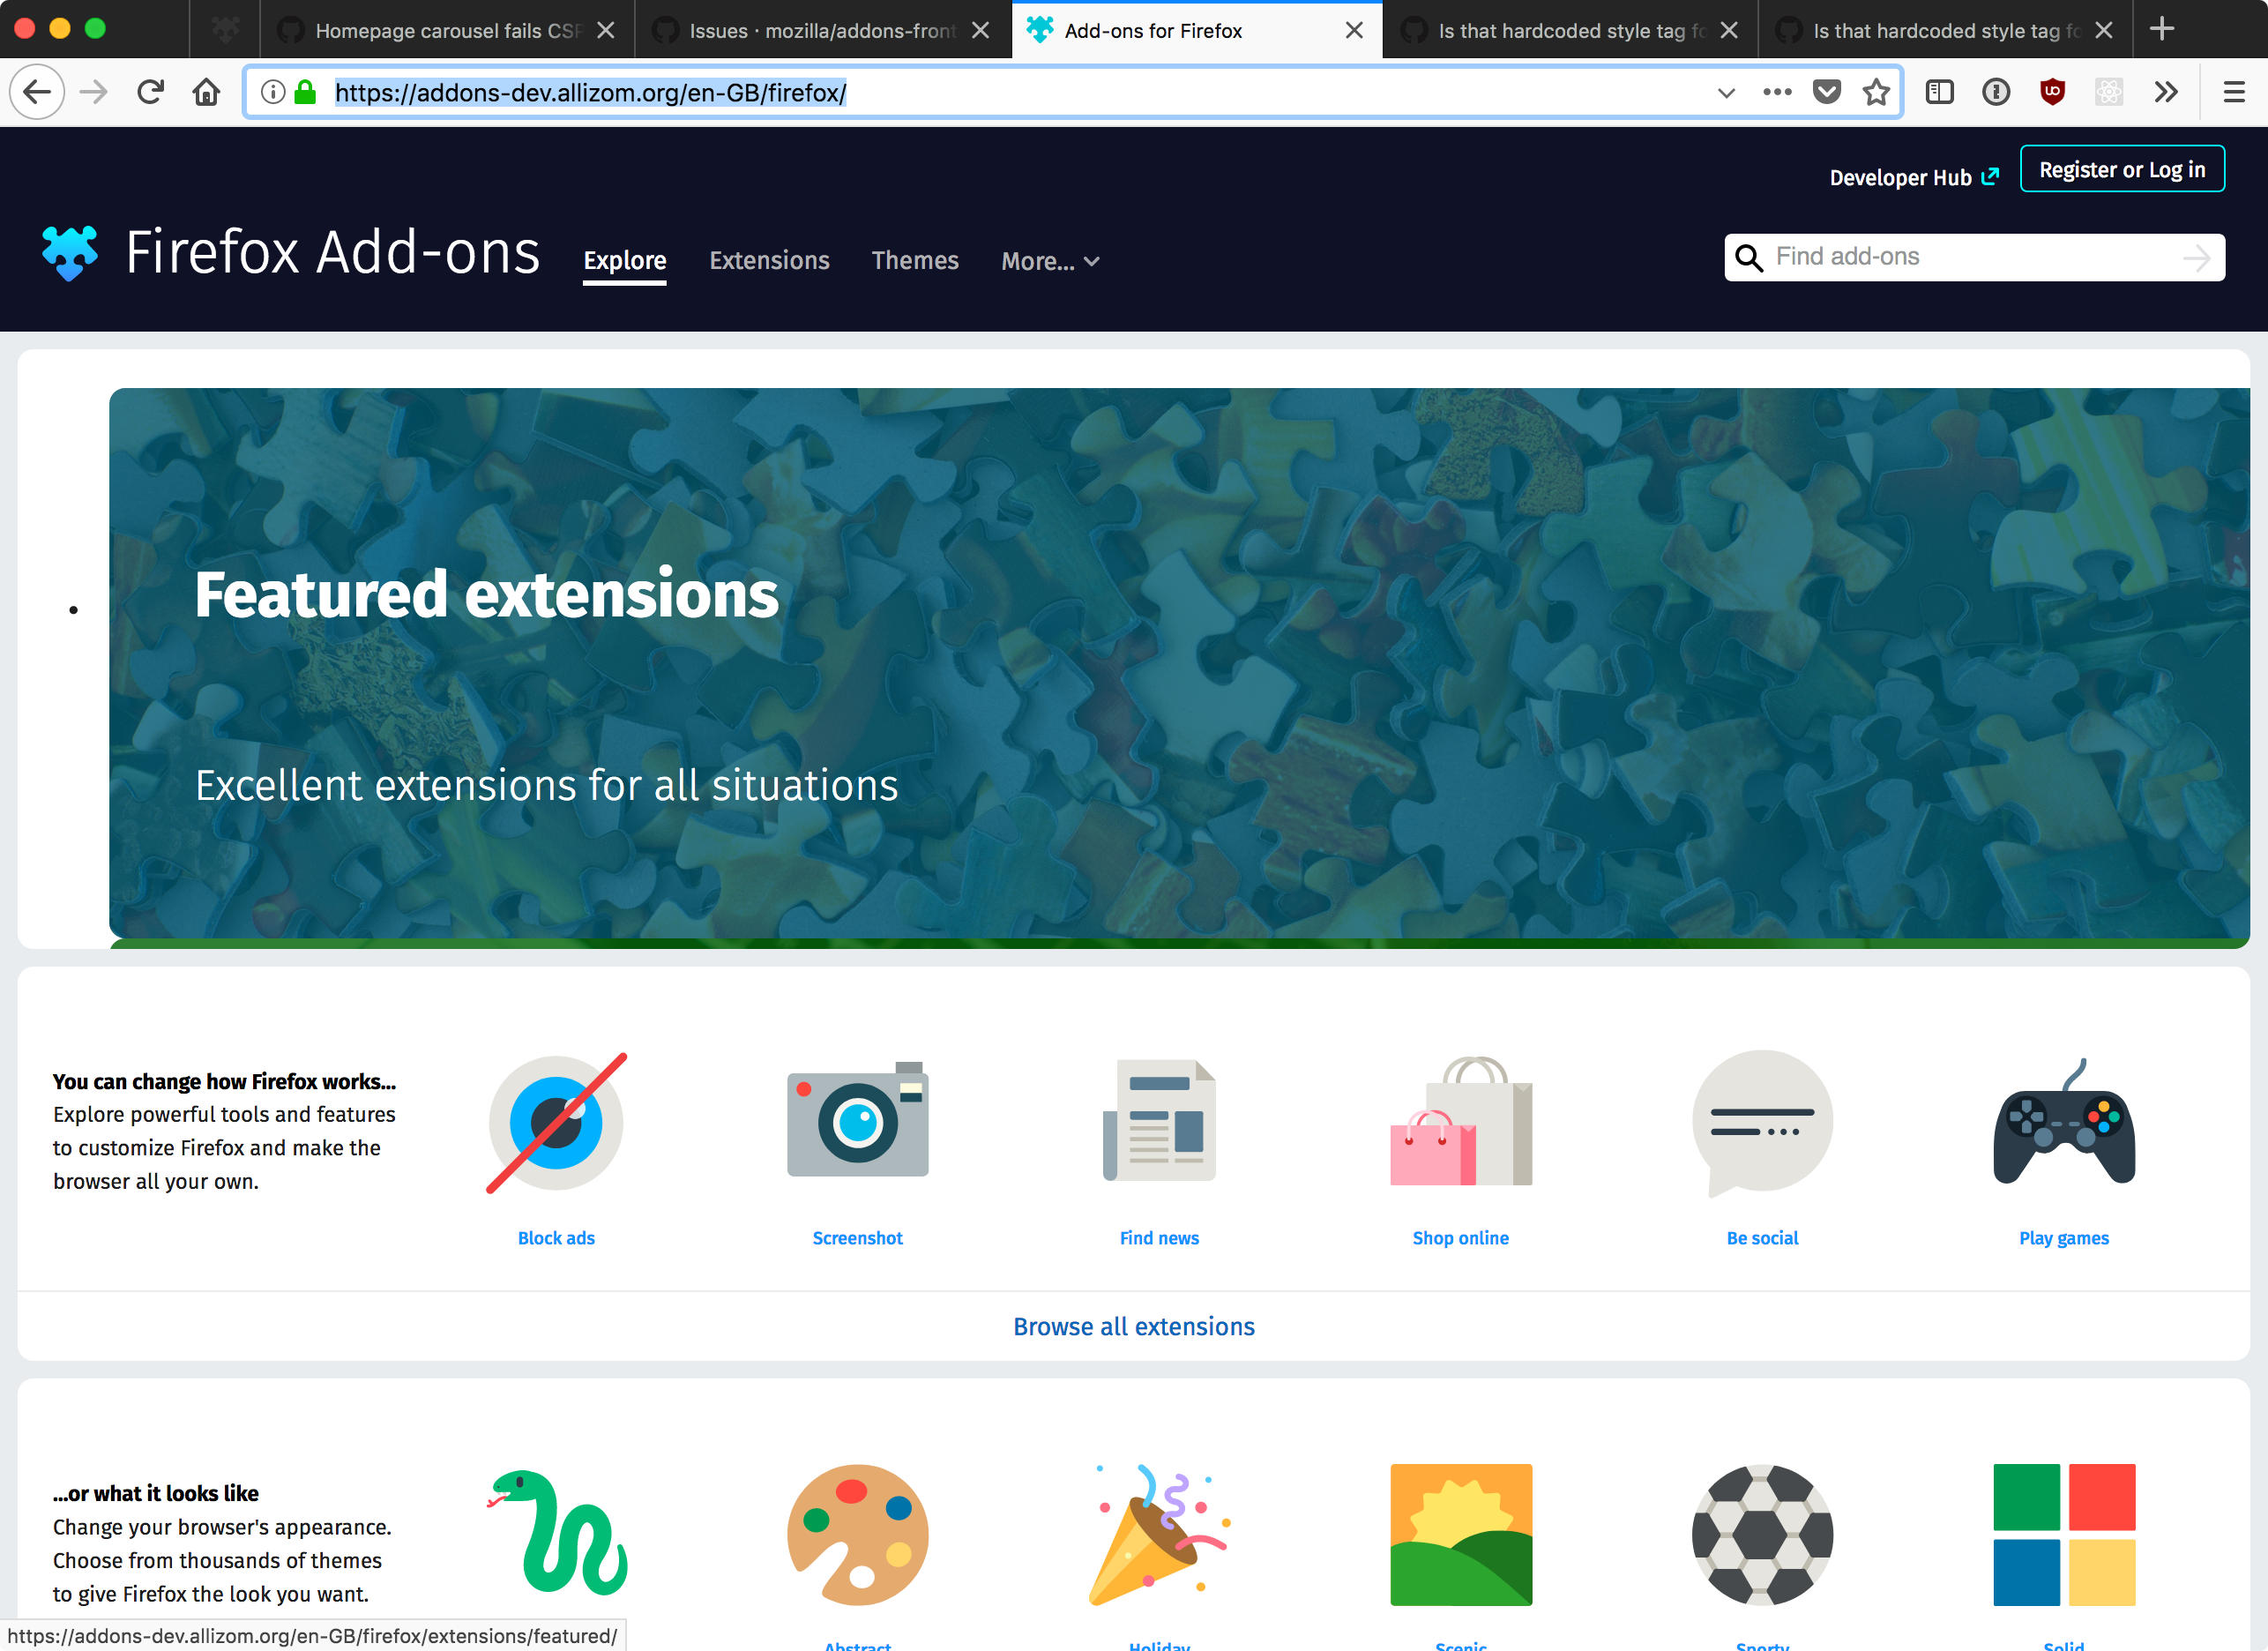 Homepage carousel fails CSP · Issue #3349 · mozilla/addons-frontend